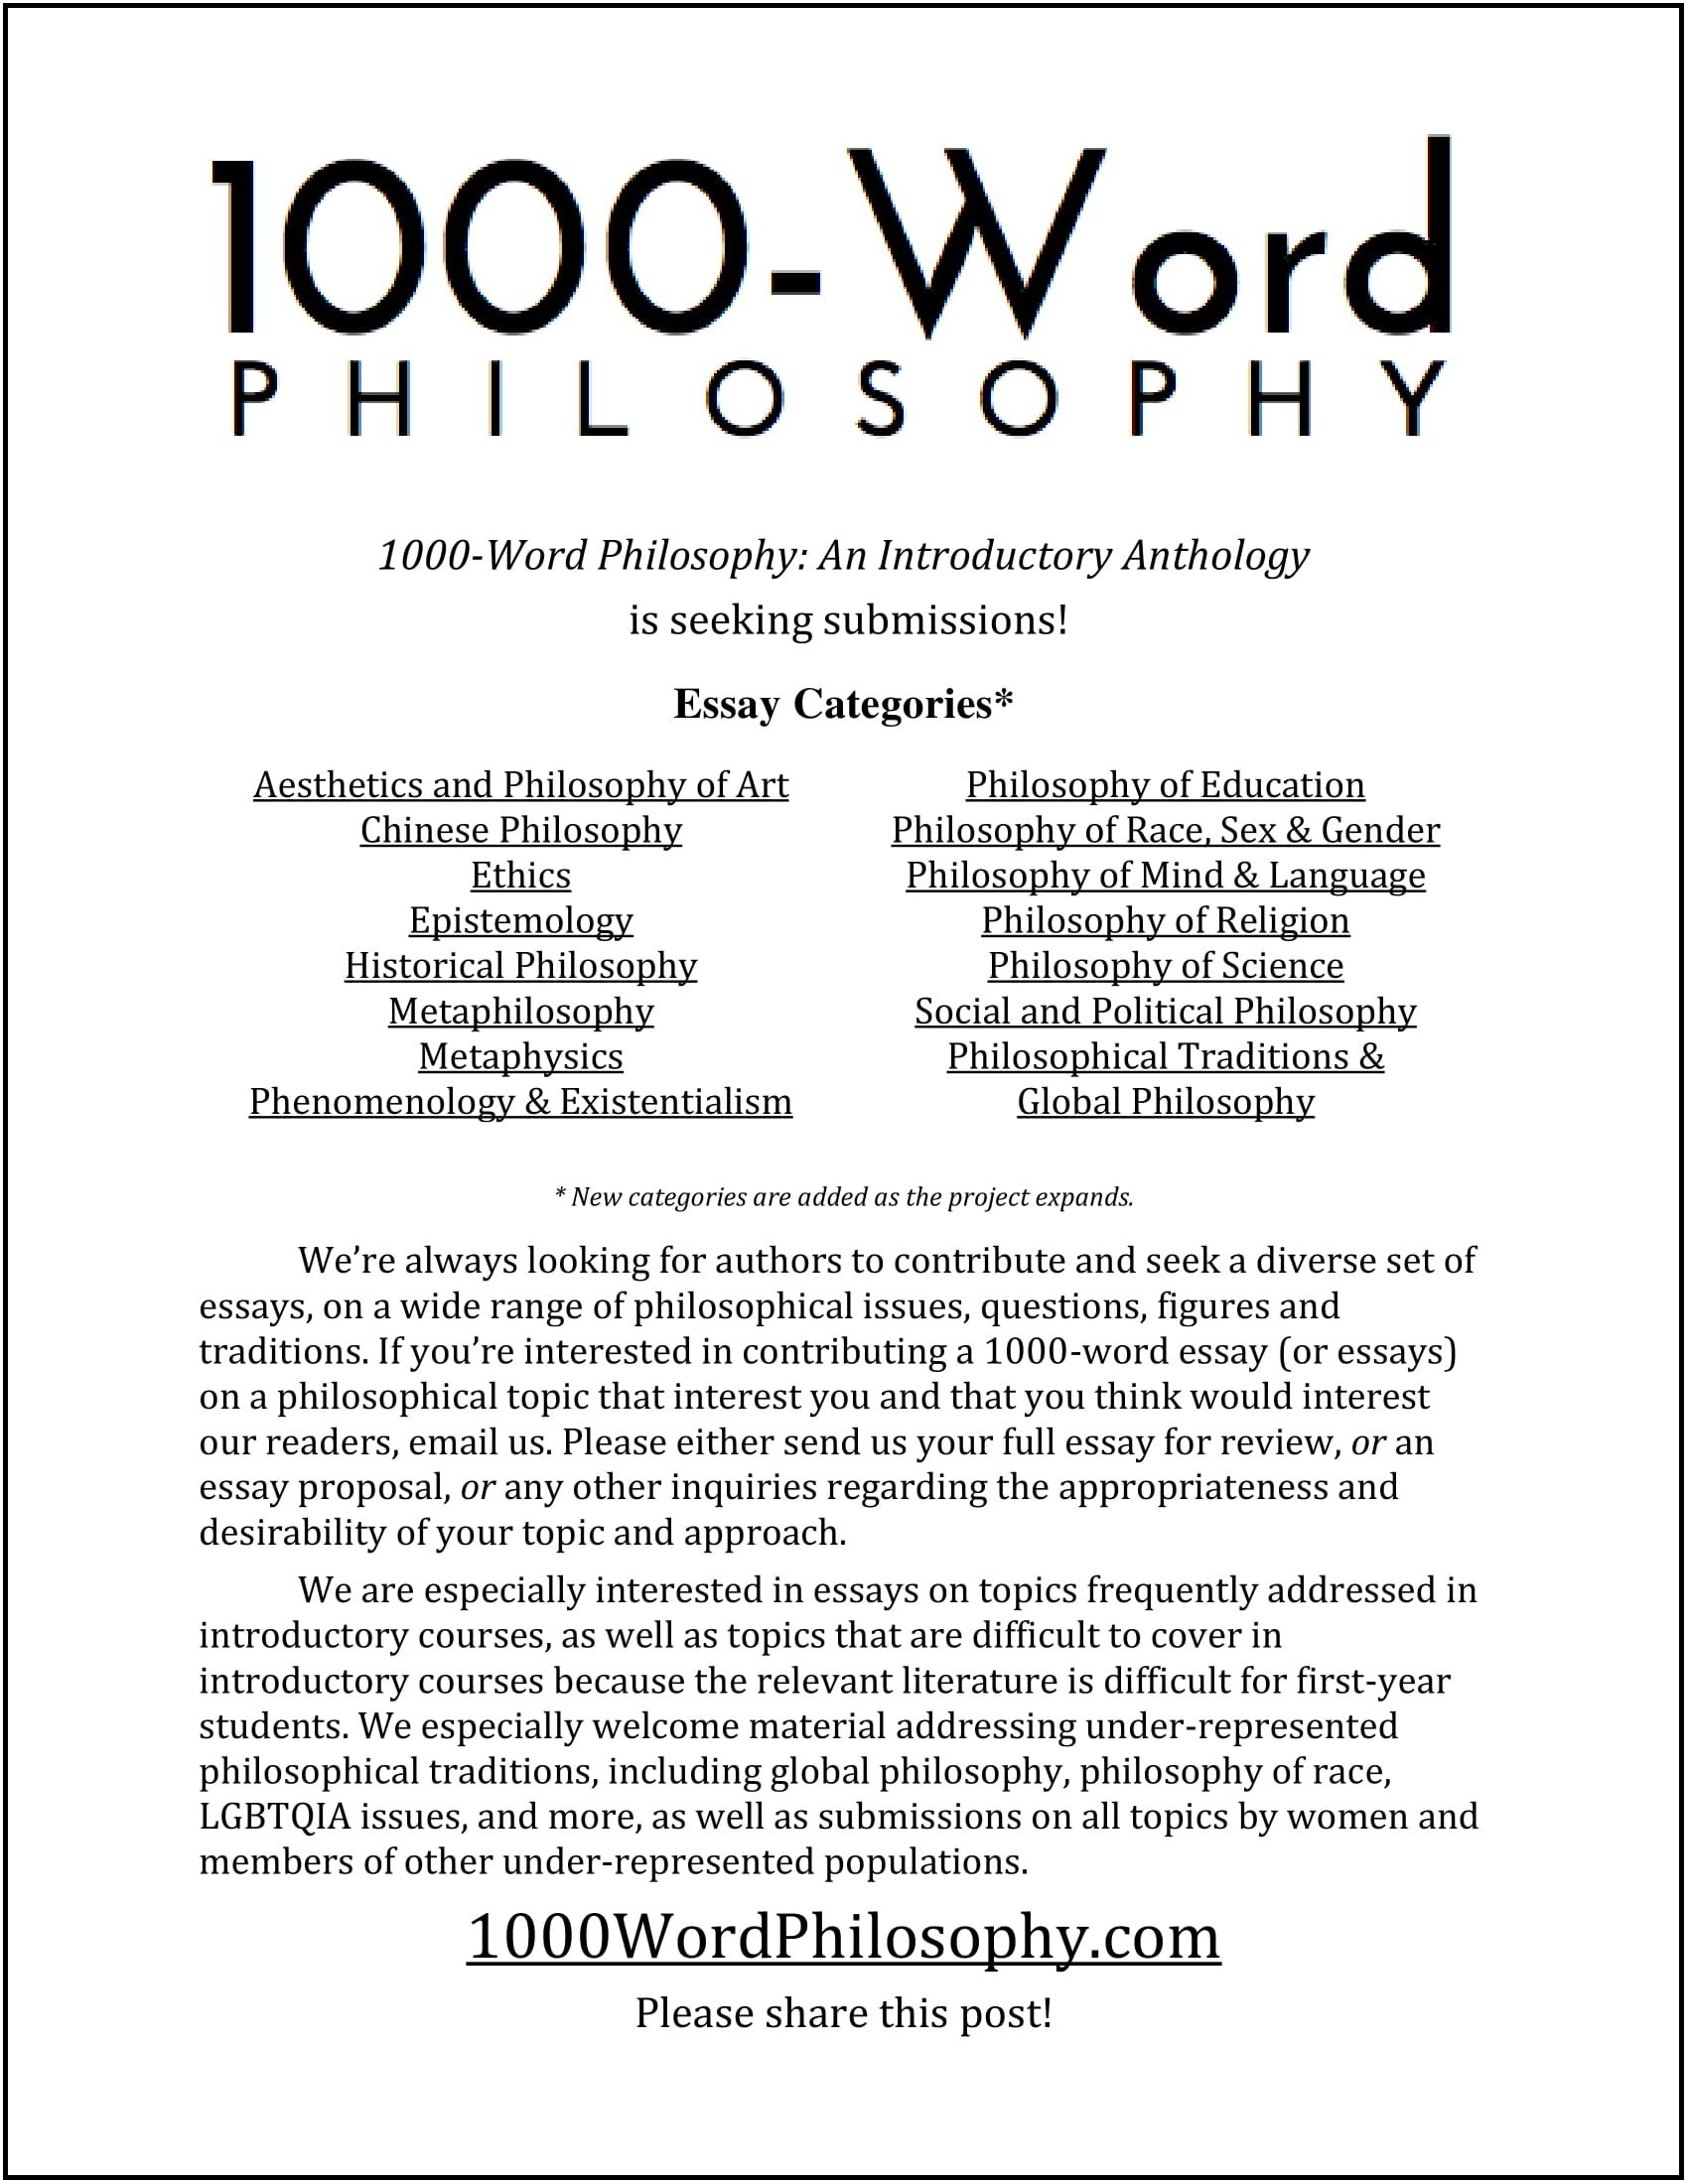 picture of the 1000-word philosophy article